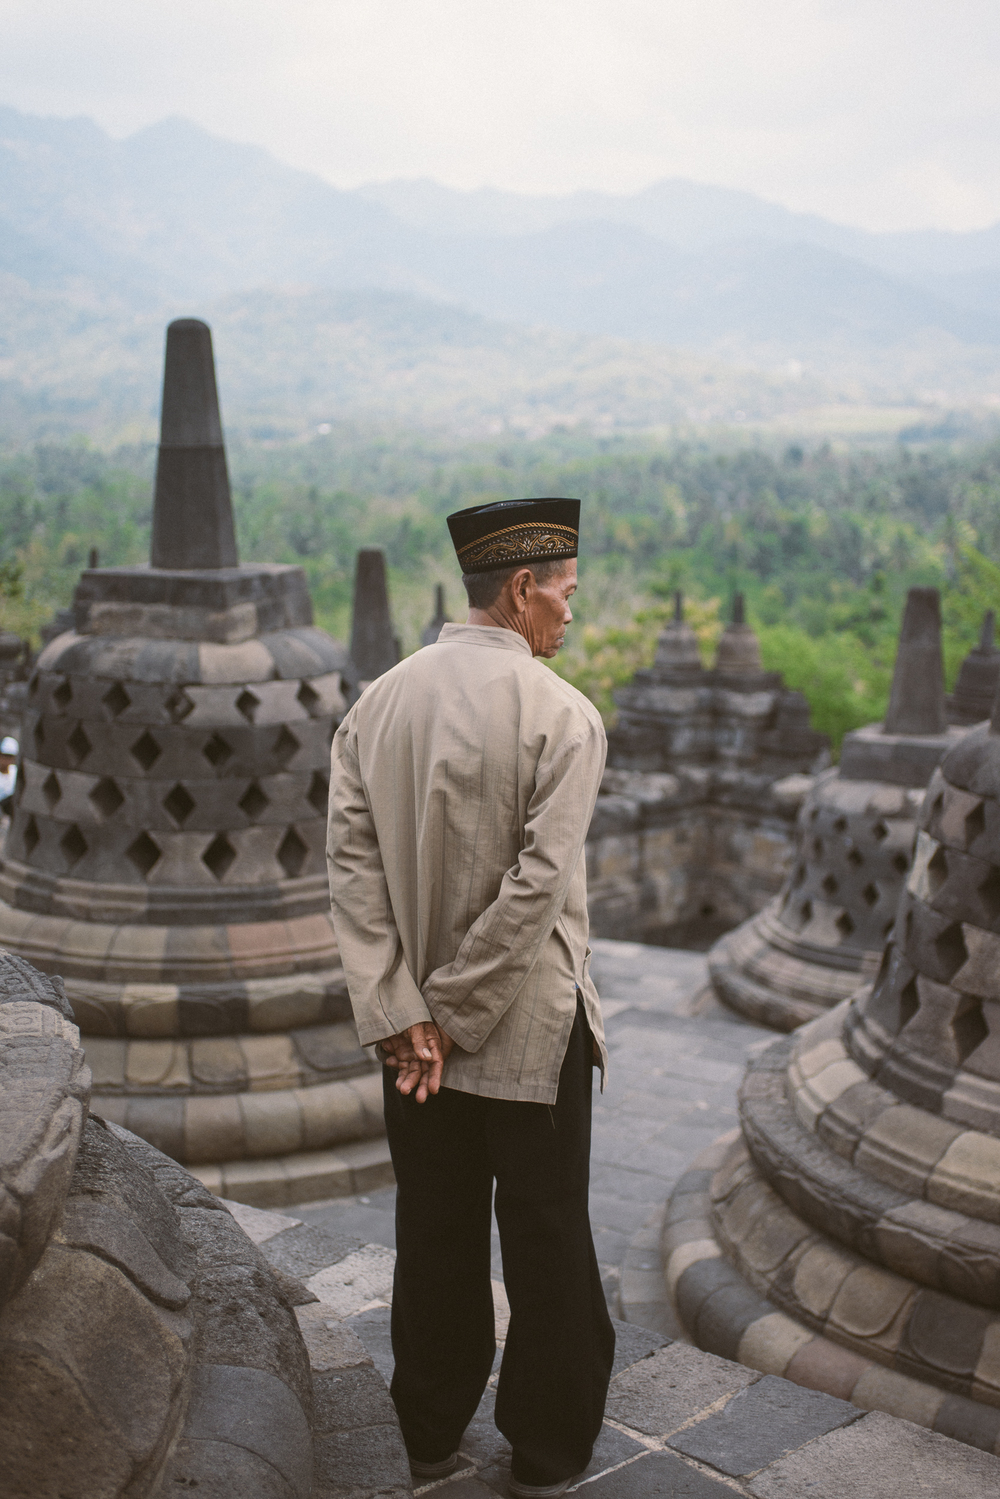 ASHarris_SQUARESPACE-Indonesia_DSC_9387-Edit.jpg